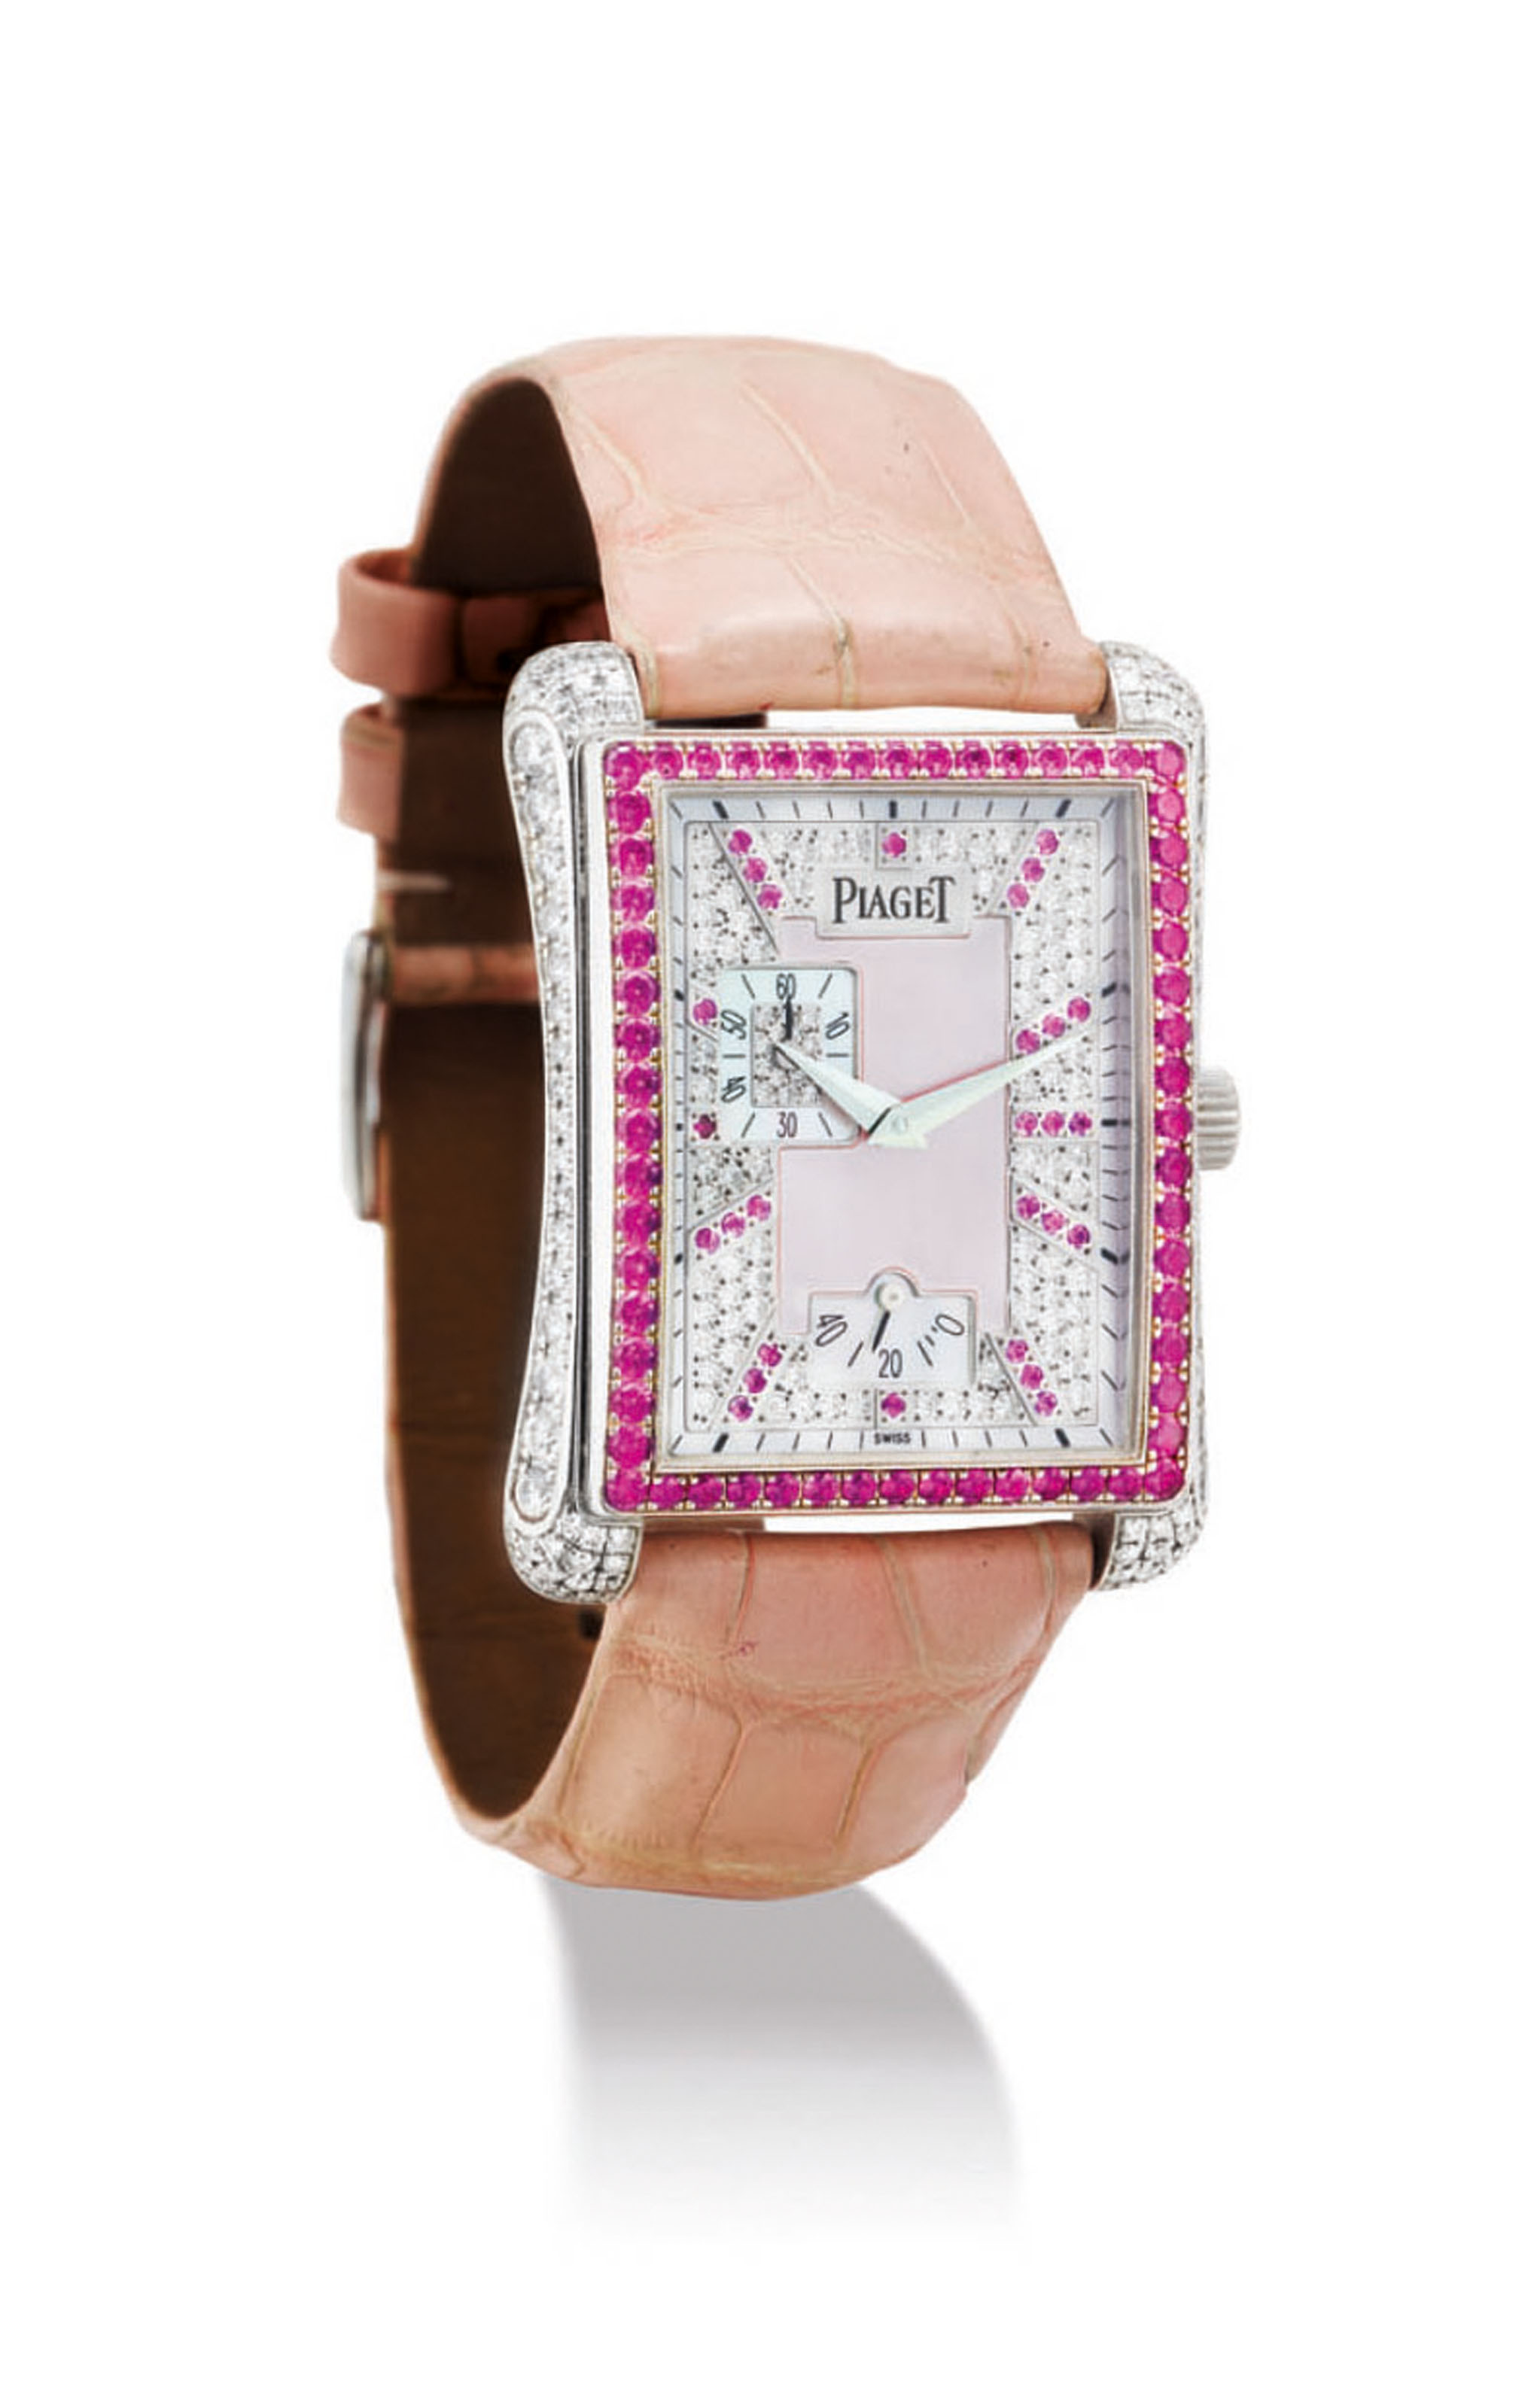 PIAGET A LADY'S FINE 18K WHITE GOLD, DIAMOND AND PINK SAPPHI...